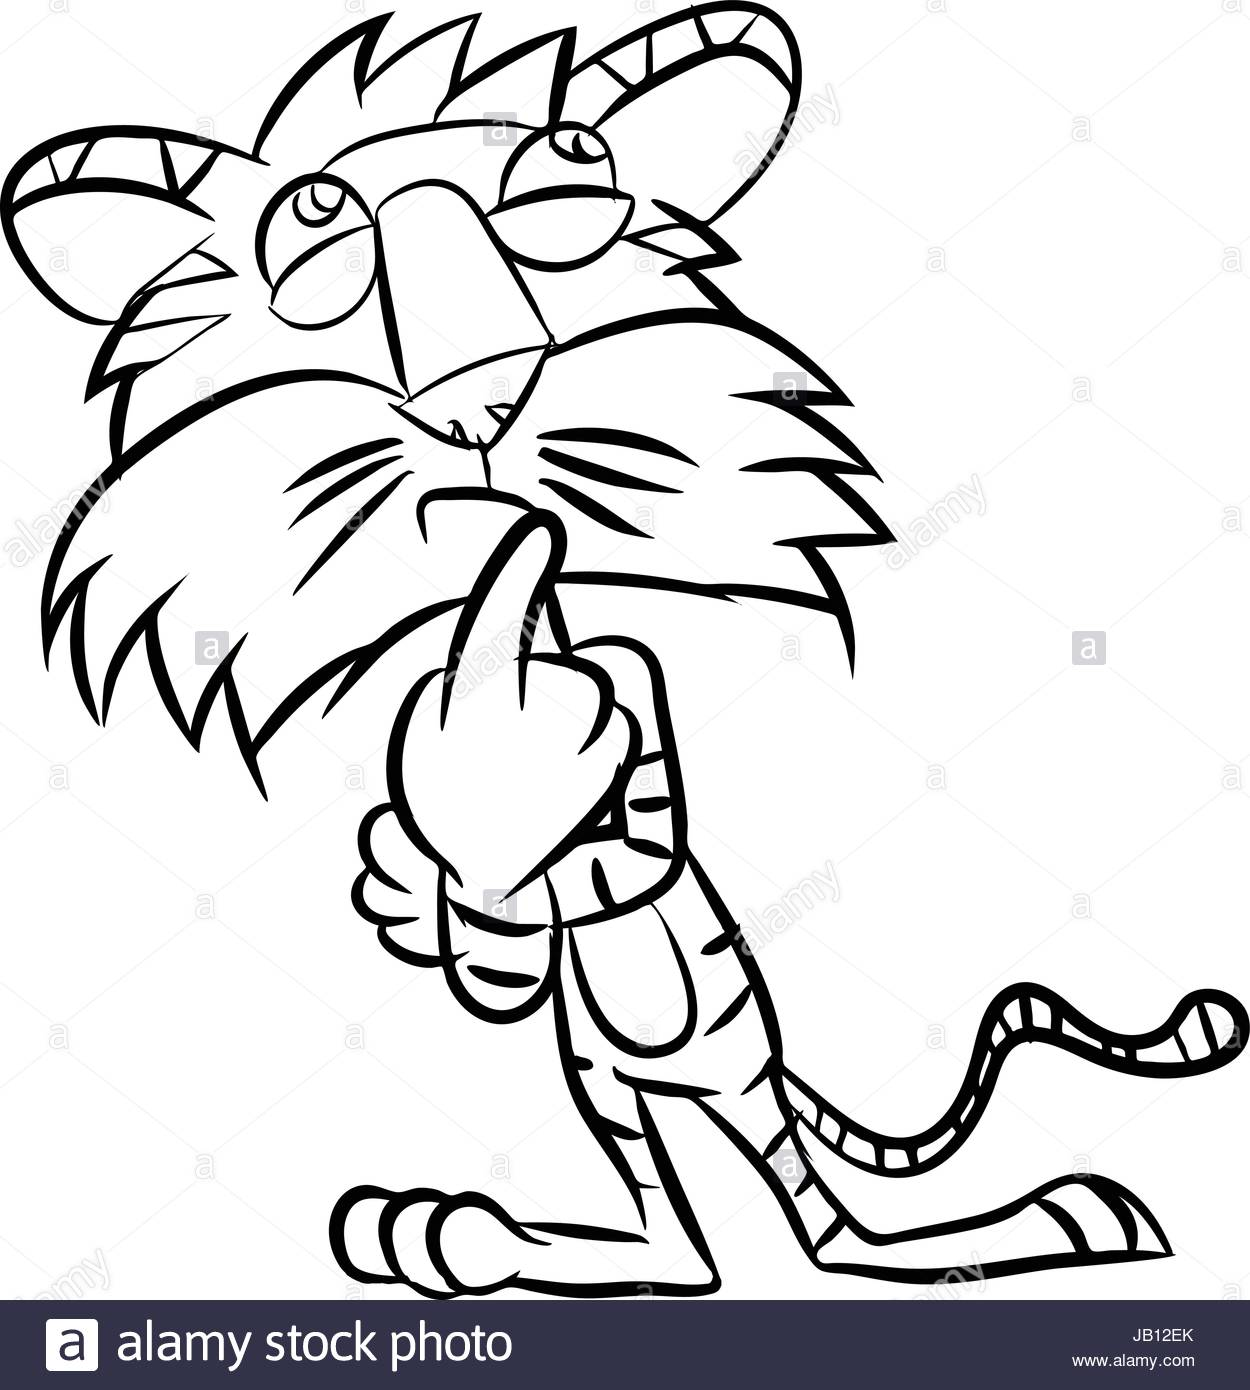 1250x1390 Line Drawing Cartoon A Tiger Take Thinking In Black And White